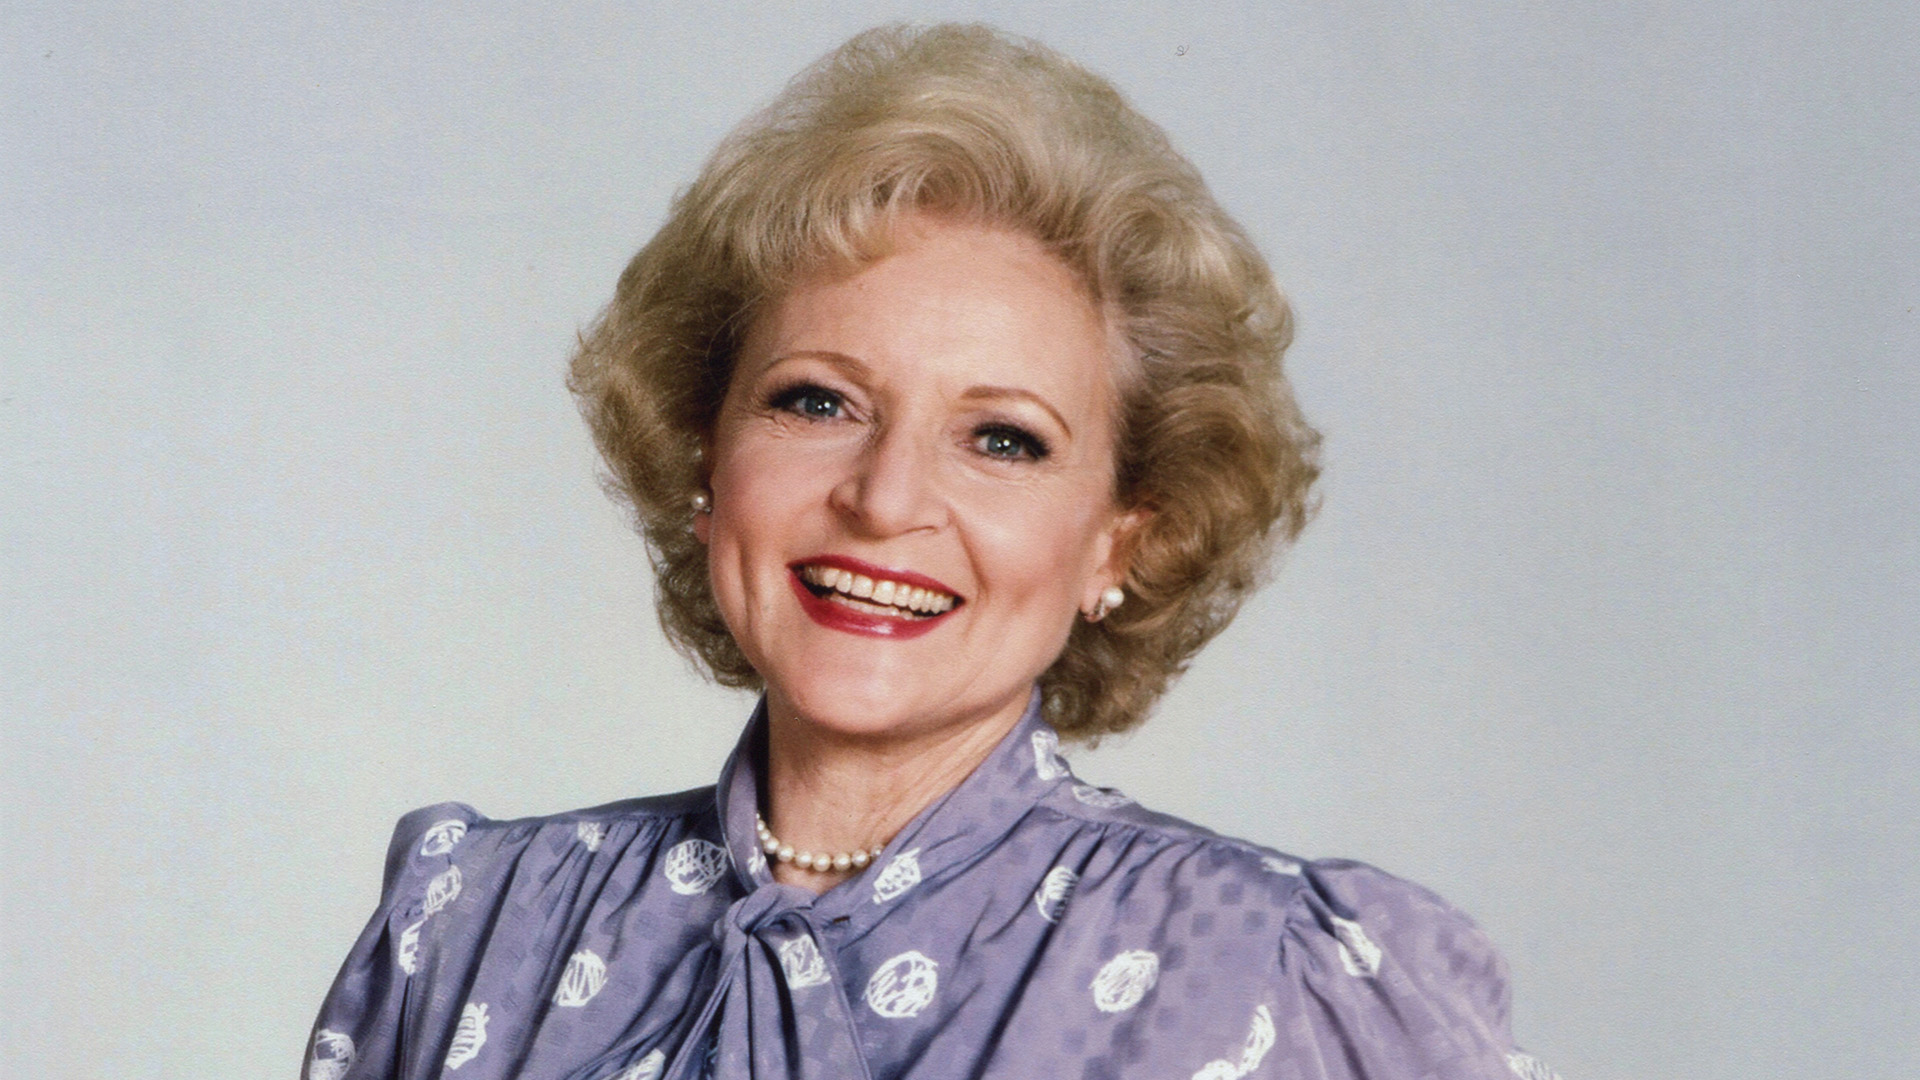 Betty White, Fleetwood Mac and more on tap for August pledge specials